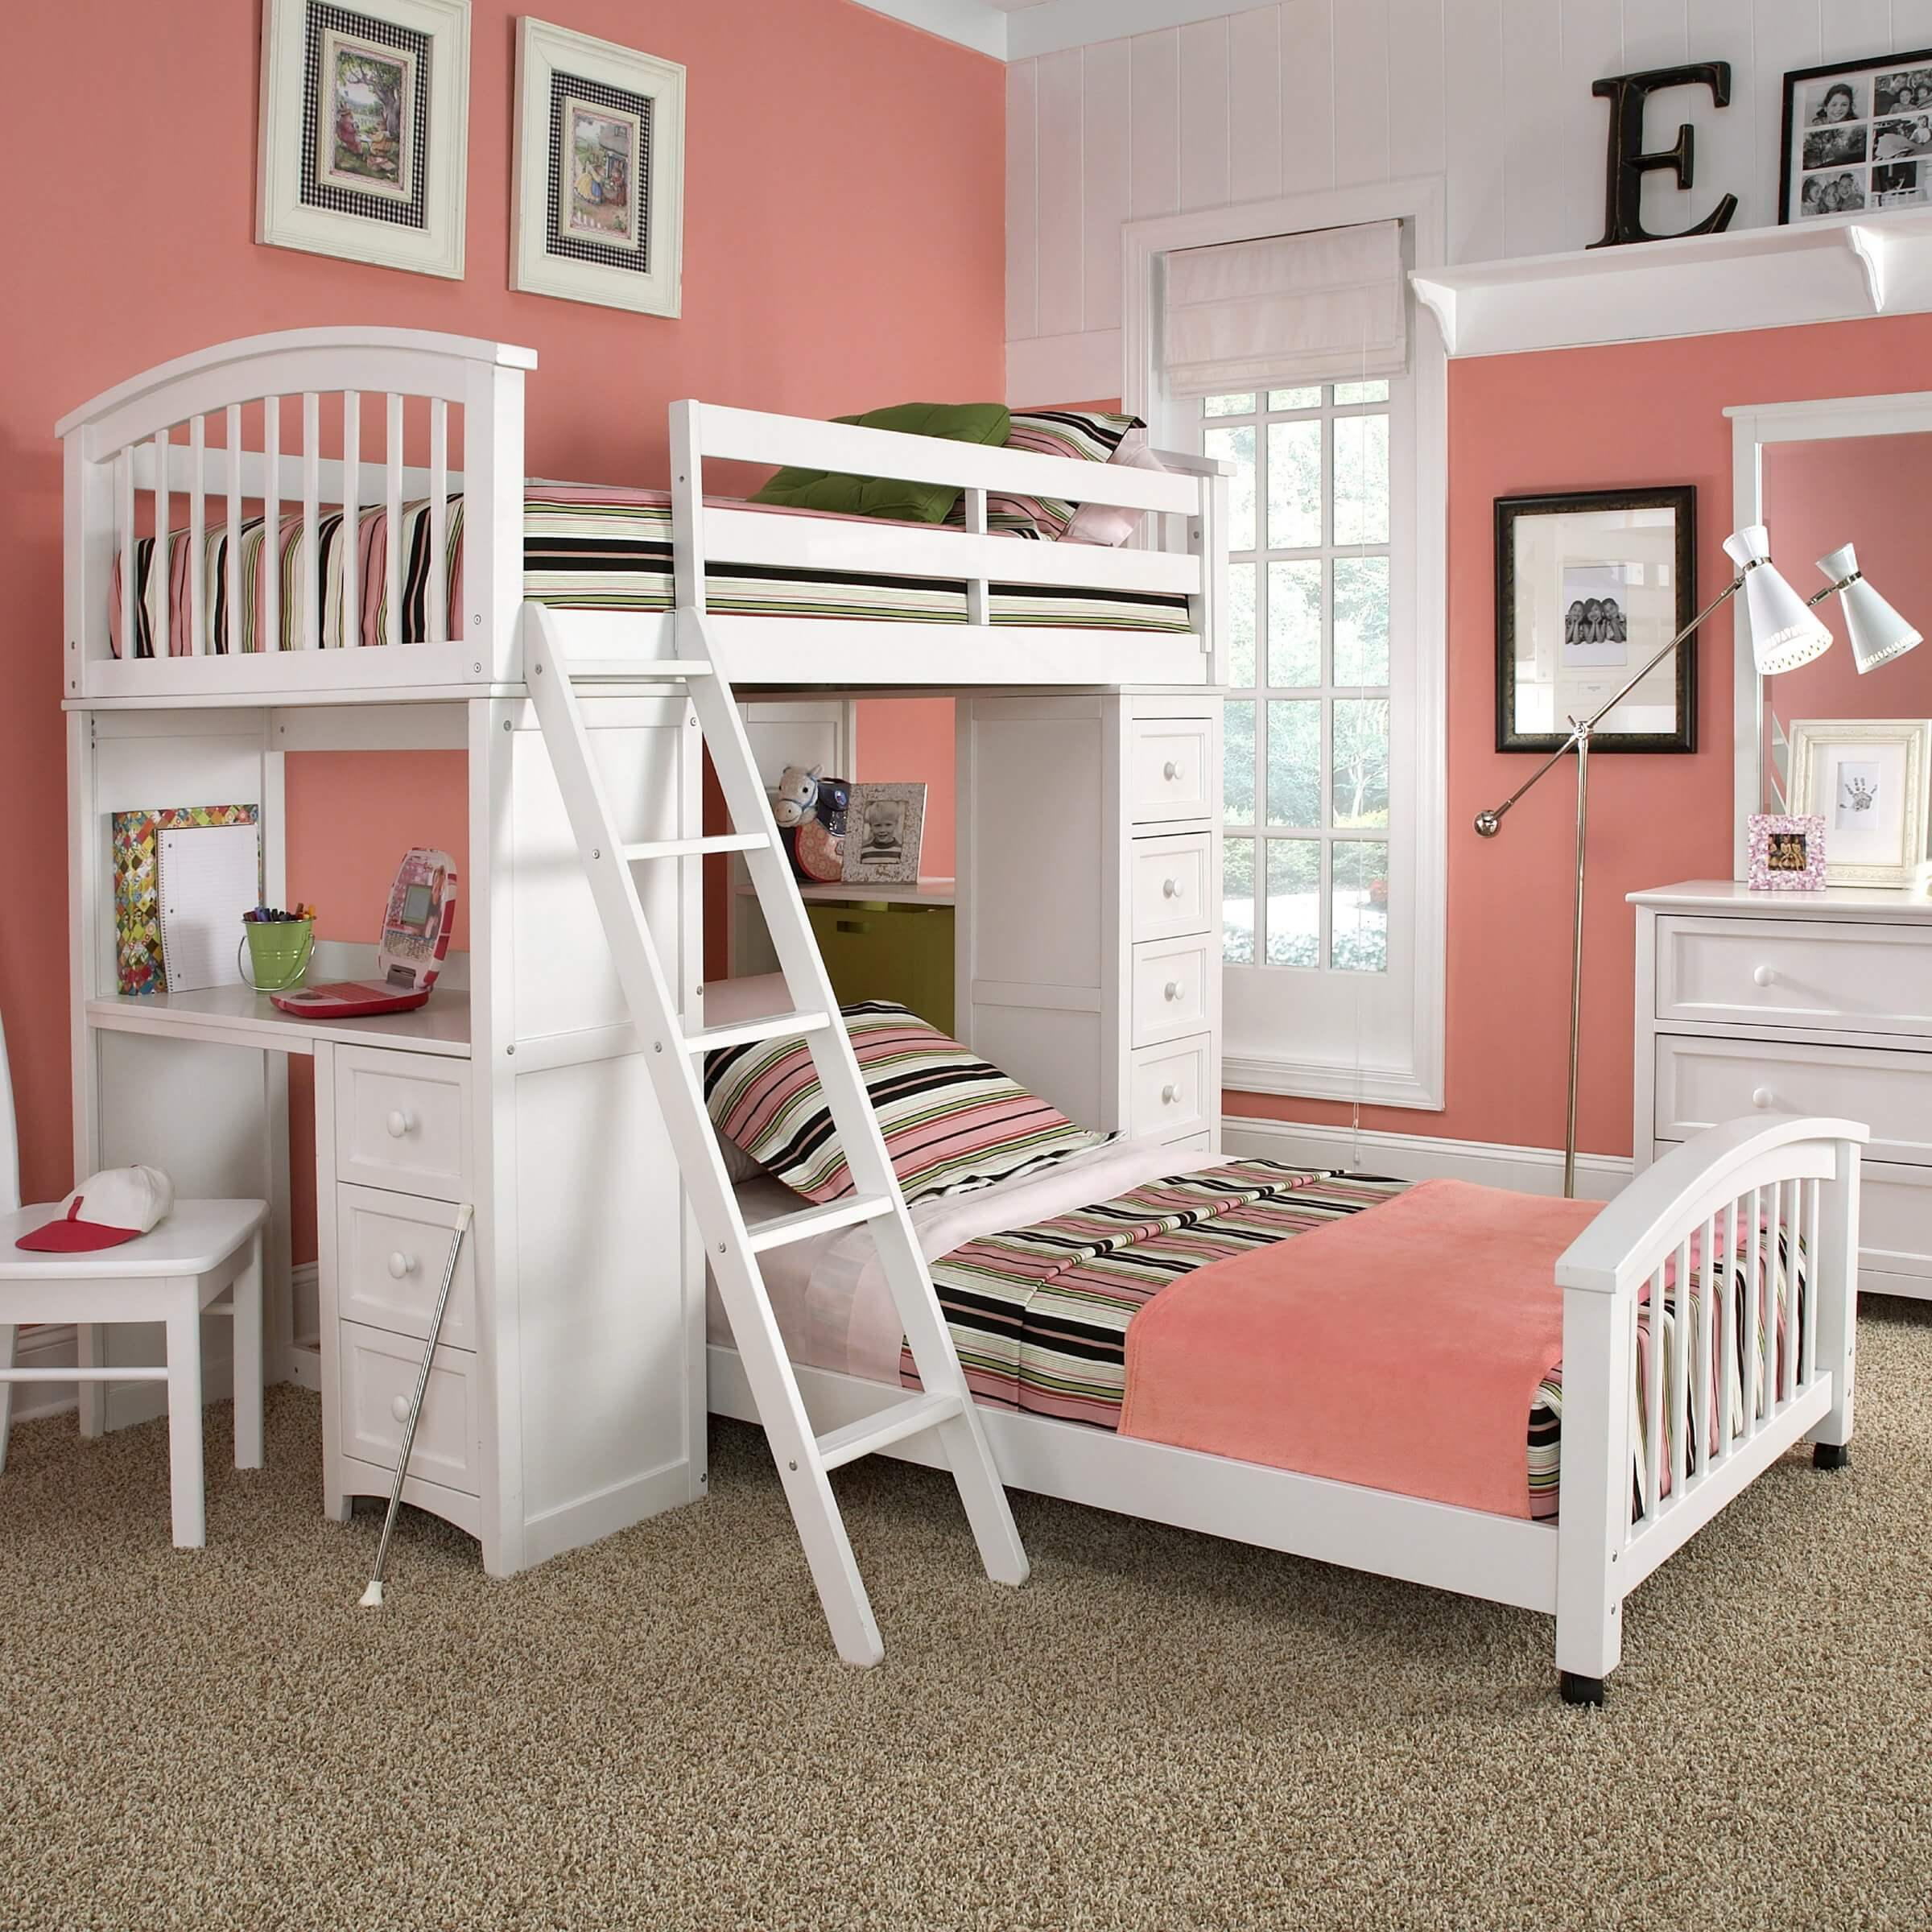 This bold whit ebed features a perpendicularly mounted lower bunk on casters for portability and placement options. The desk at left is complemented by shelving and drawers at right.